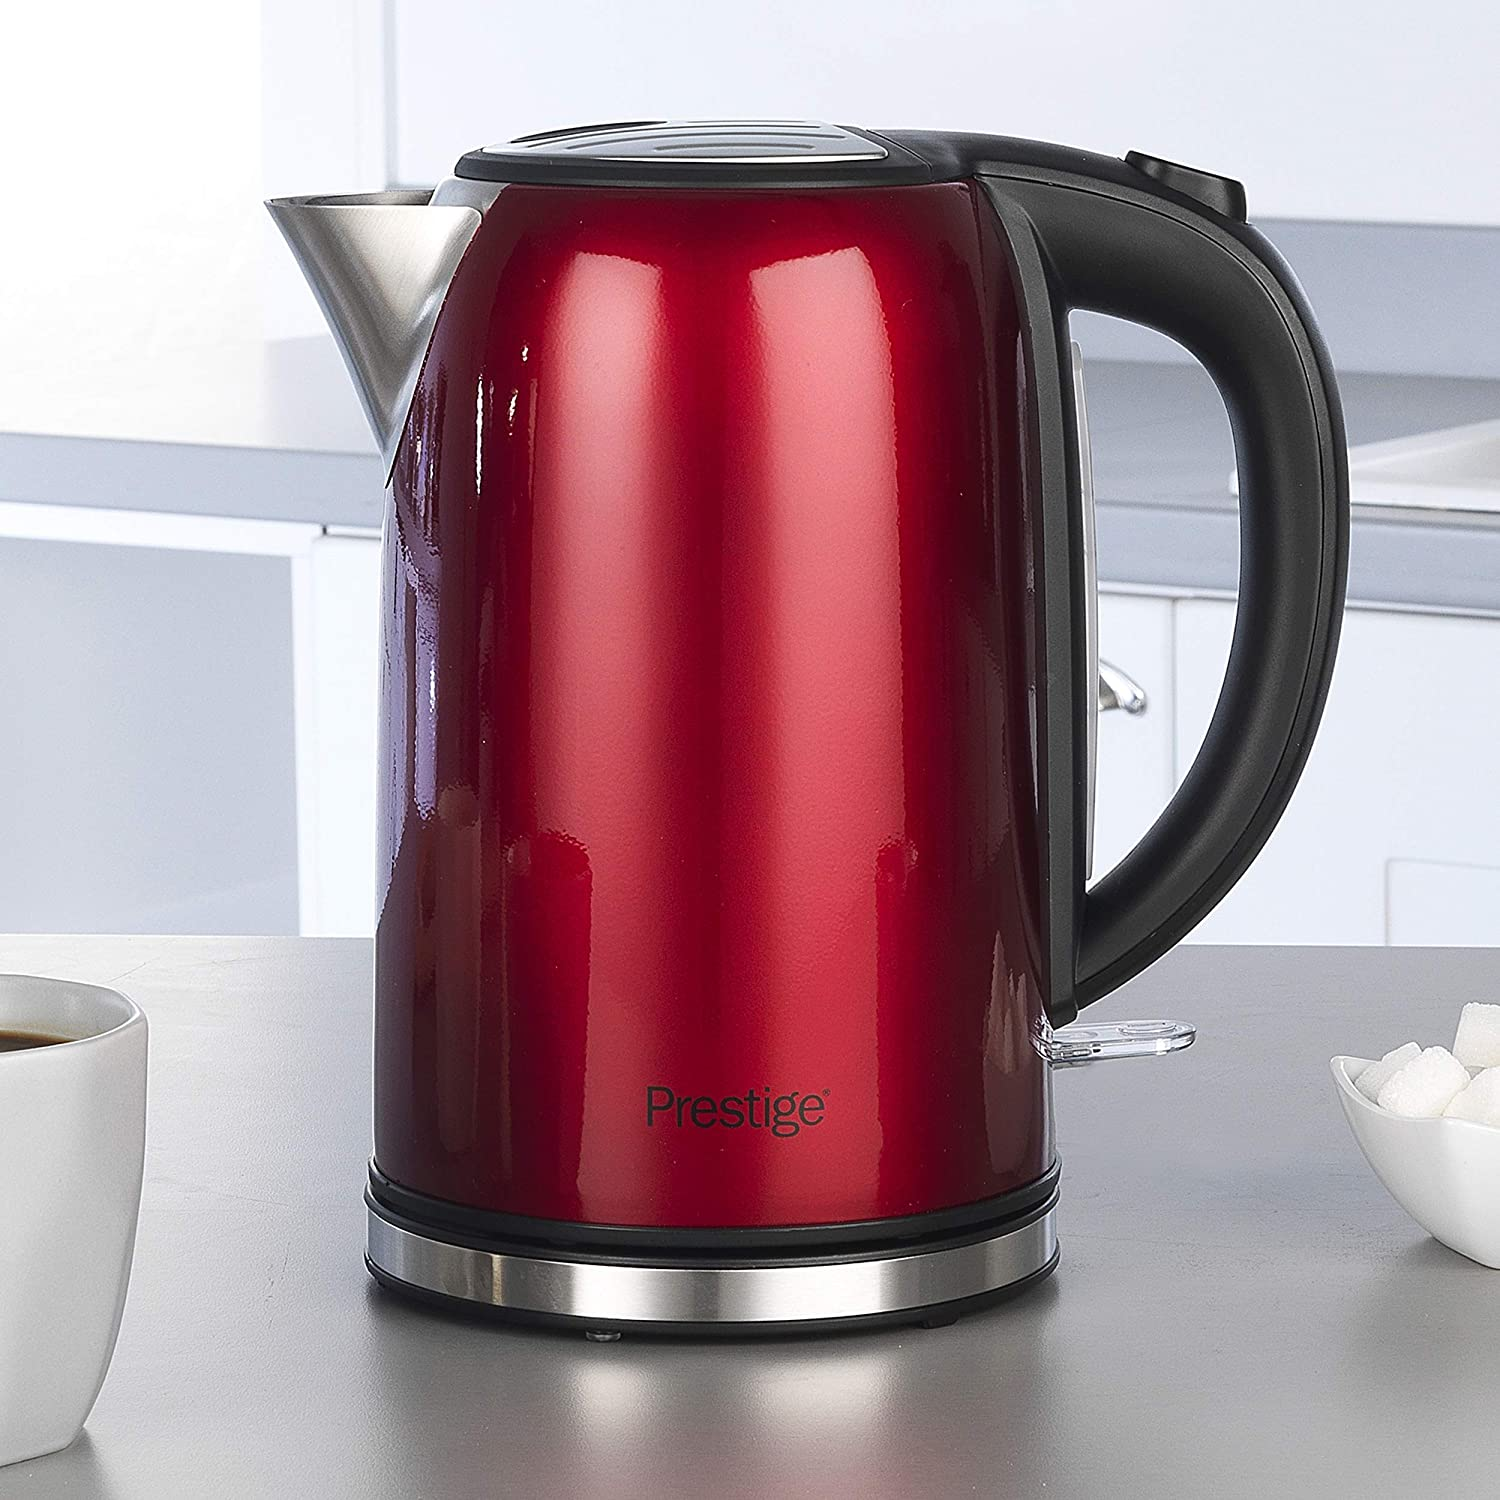 Rapid Boil Stainless Steel 3000W 1.7 Litre Prestige 46120 Cordless Kettle 3000 W Pearlescent Red 1.7 liters